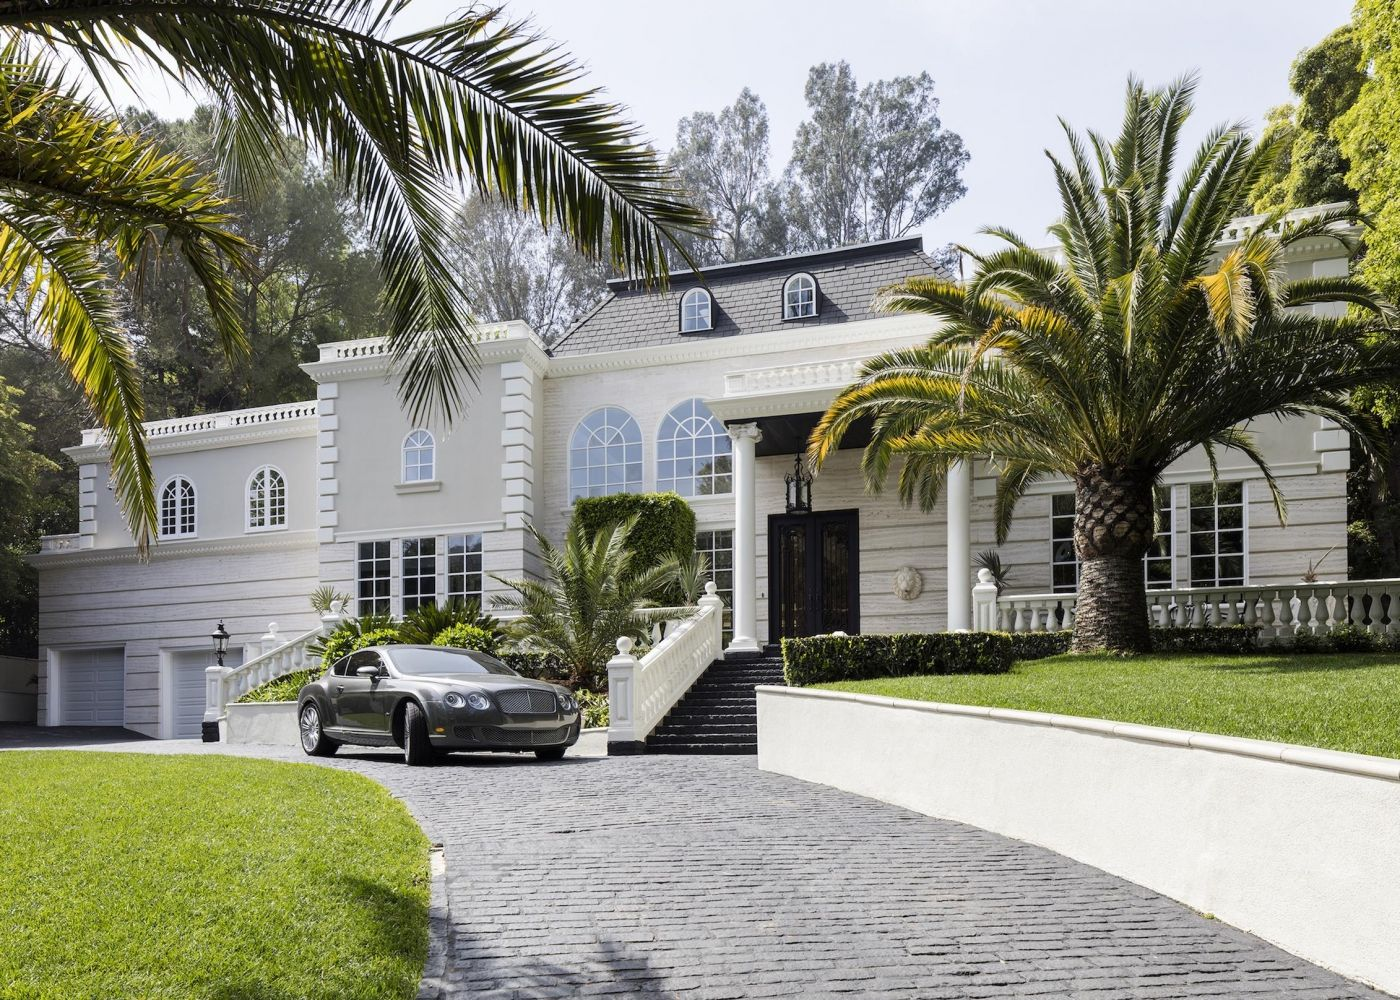 1485 stone canyon road los angeles ca 90077 located in - 5 bedroom house for sale los angeles ...